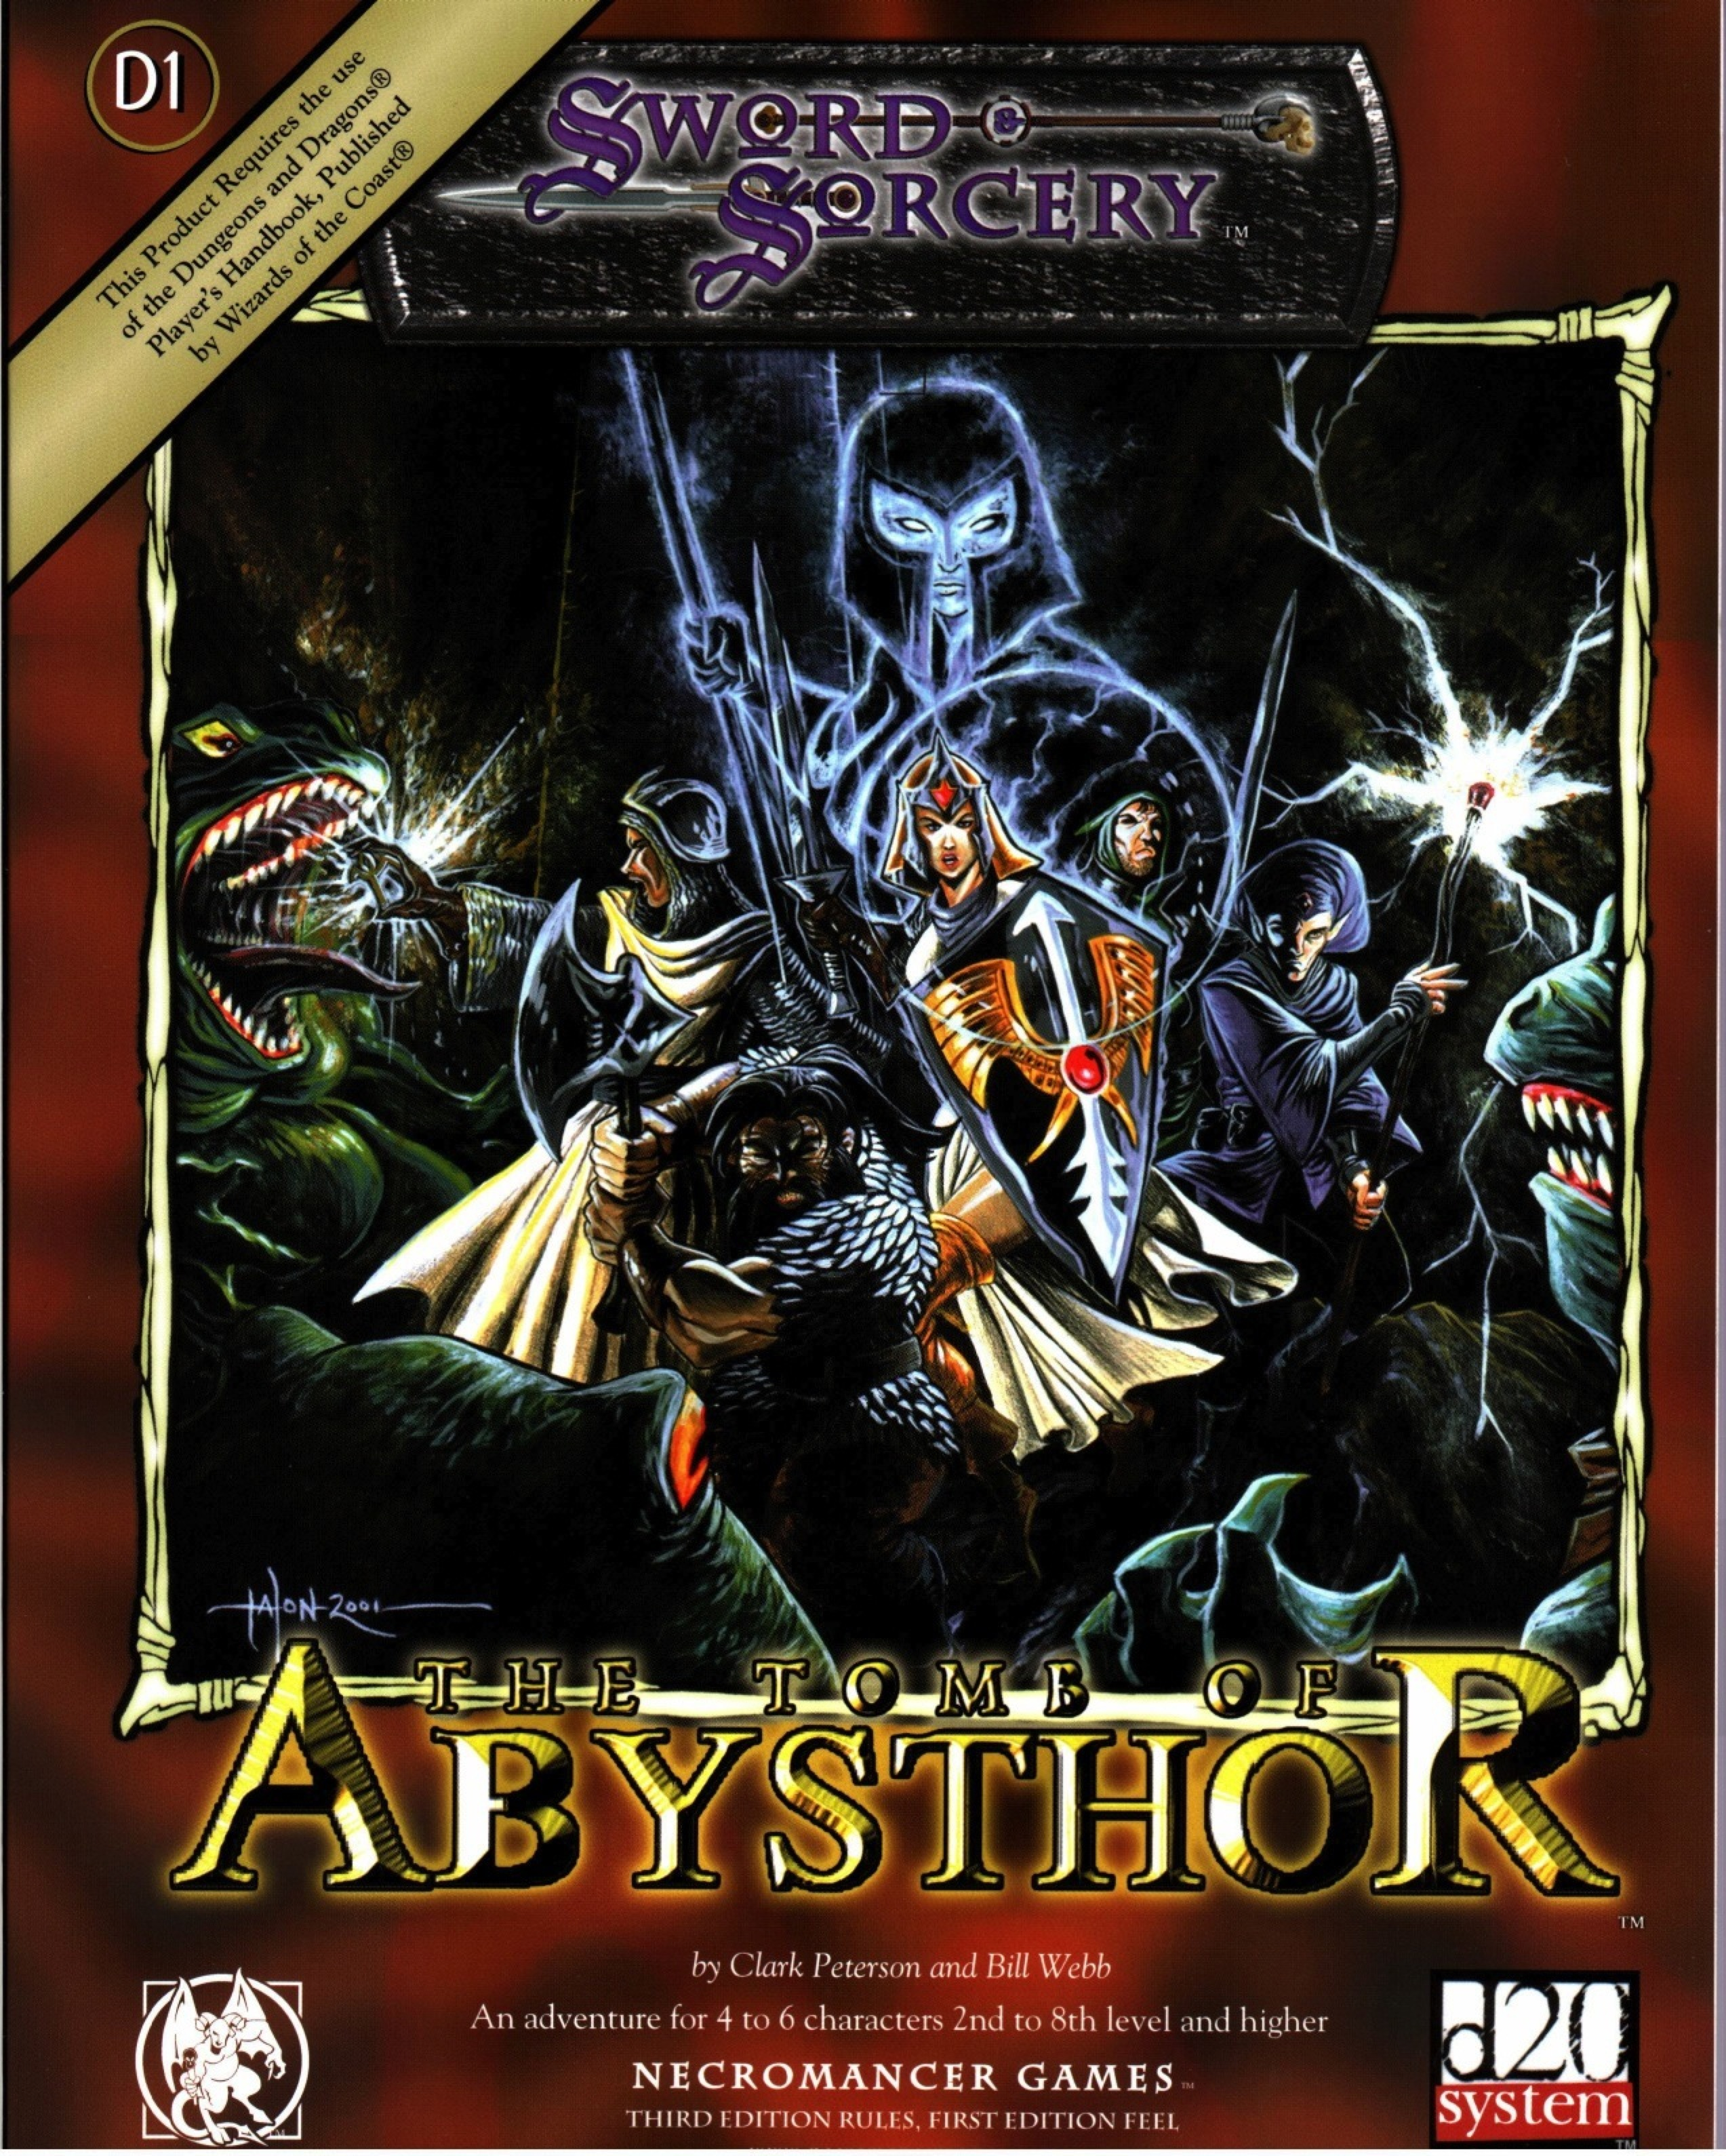 Cover of Tomb of Abysthor